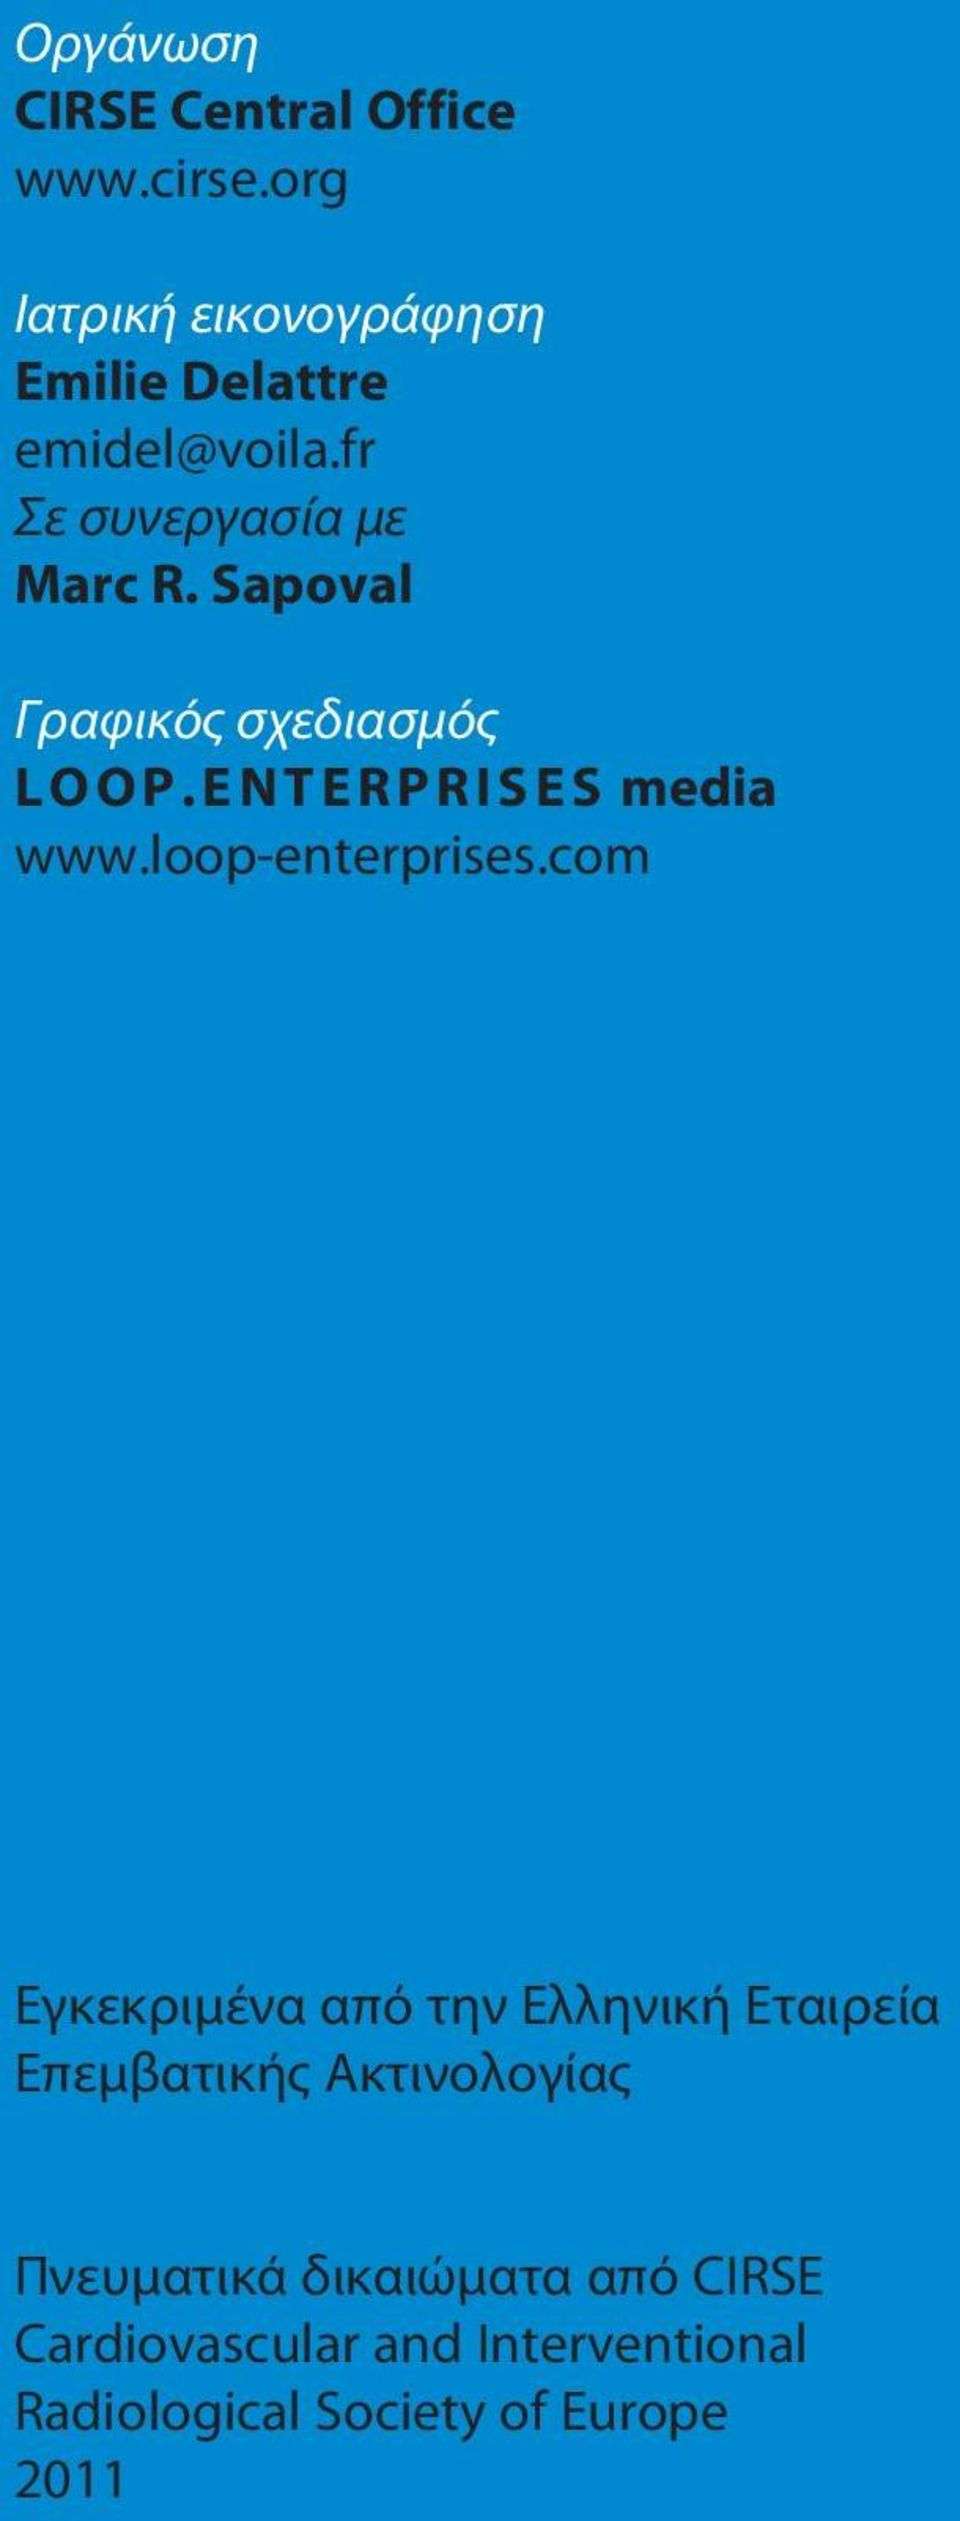 Sapoval Γραφικός σχεδιασμός LOOP.ENTERPRISES media www.loop-enterprises.